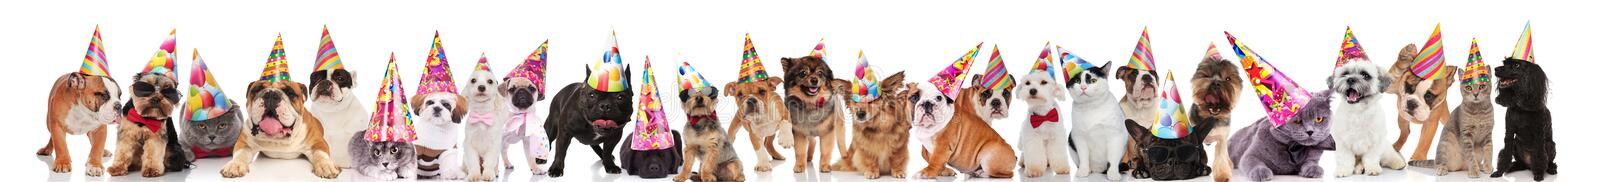 Many adorable cats and dogs ready for birthday party. Wearing birthday caps, standing, sitting and lying on white background royalty free stock photography